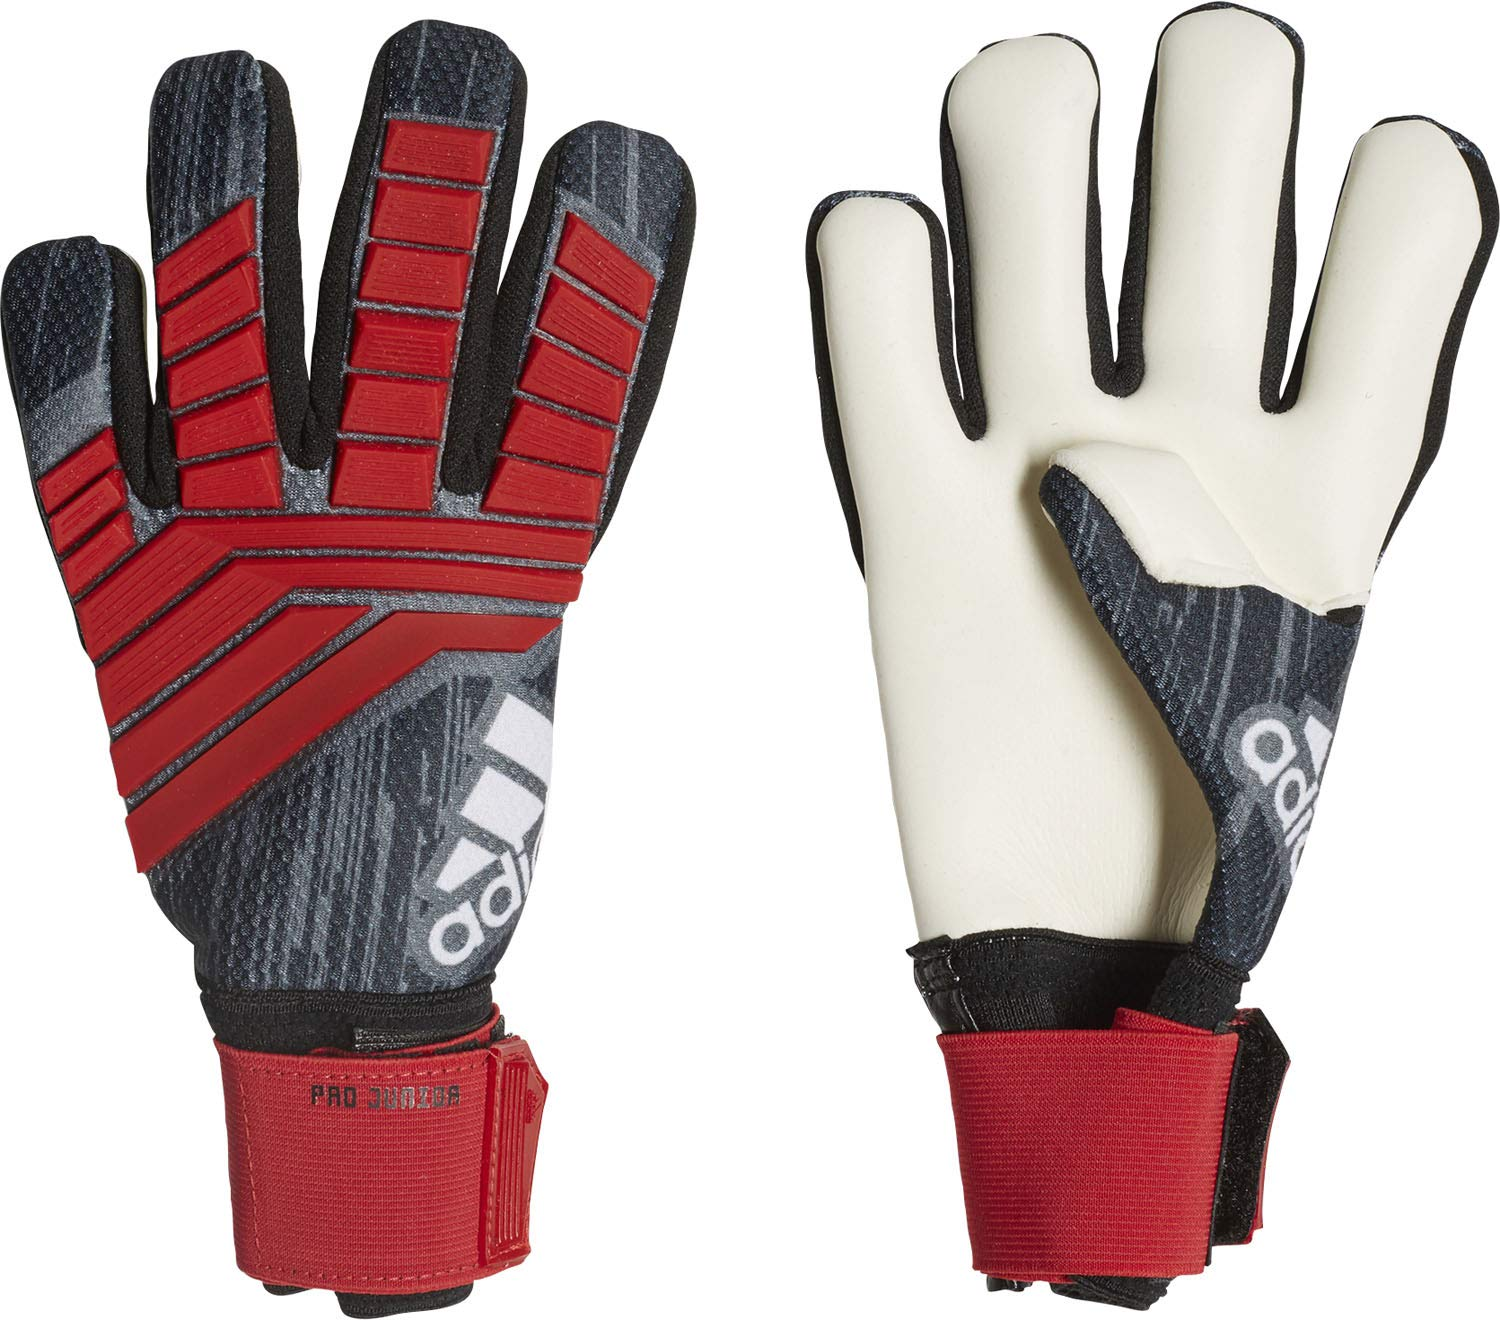 adidas Predator Pro Junior Goalkeeper's Gloves, Children's, CW5596 Children's ADIFO|#adidas